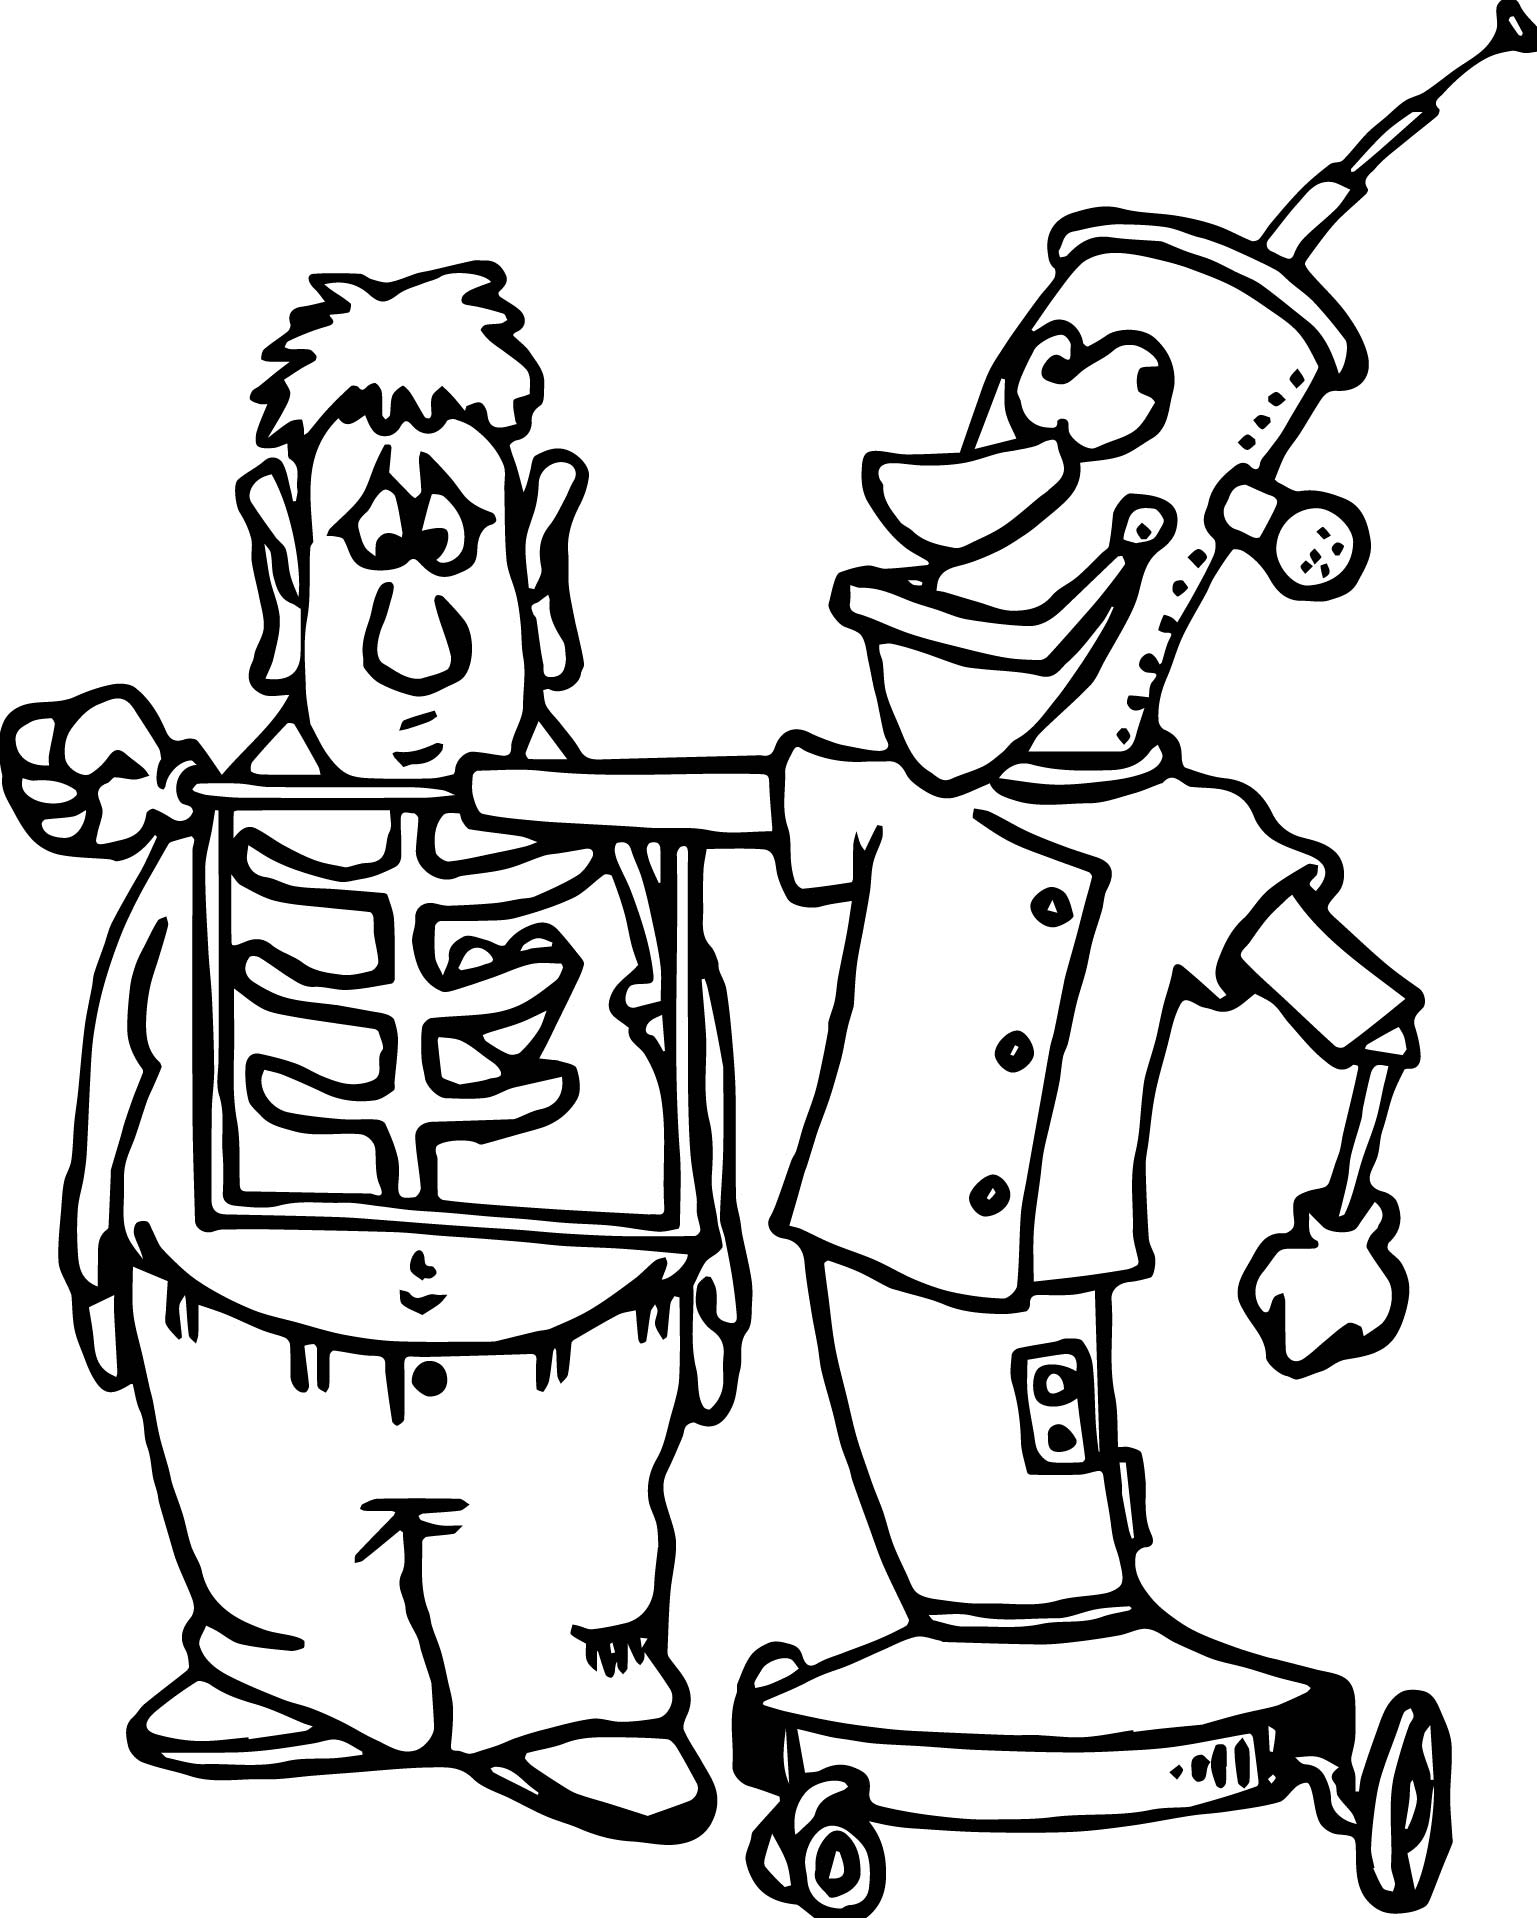 1537x1918 83 [ Coloring Page X Ray ] X Ray Coloring Page, Letter, X Ray